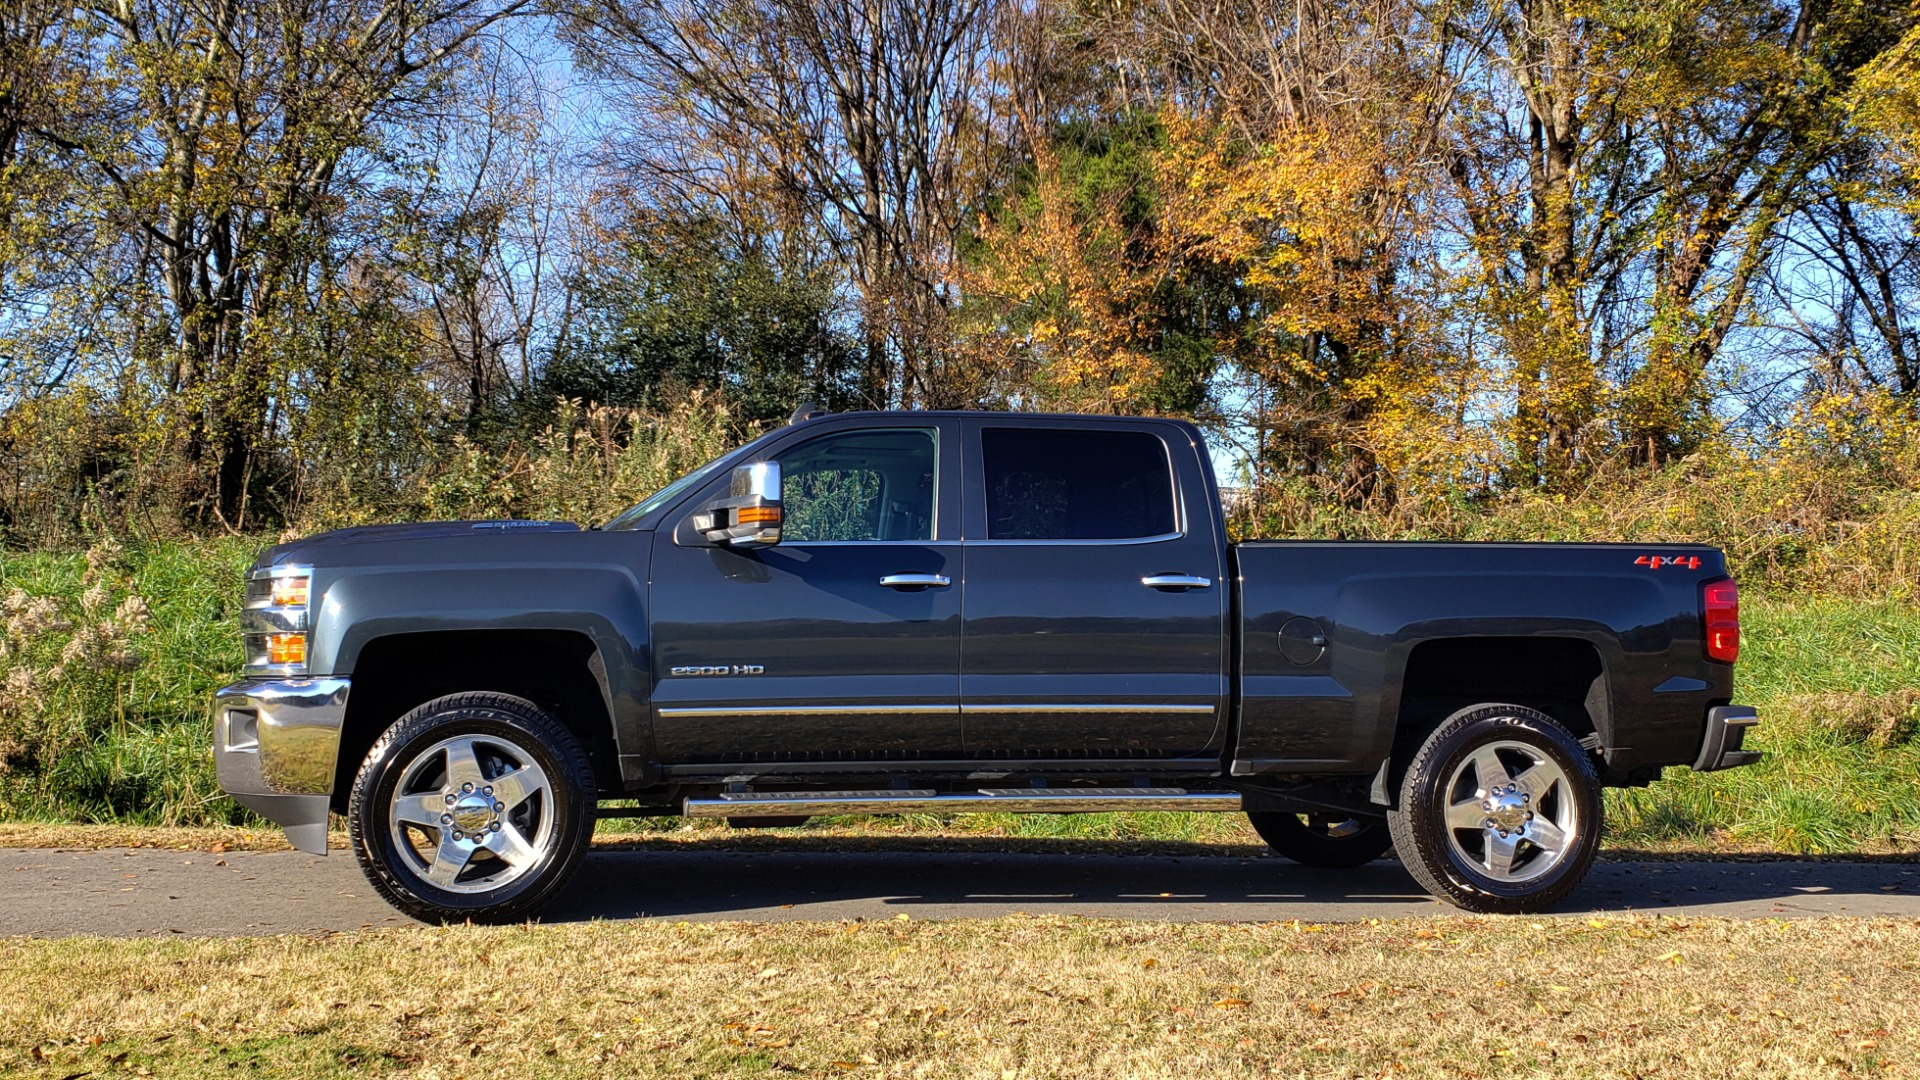 Used 2018 Chevrolet SILVERADO 2500HD LTZ 4WD CREWCAB / DURAMAX / ALLISON / NAV / BOSE / SUNROOF for sale Sold at Formula Imports in Charlotte NC 28227 2